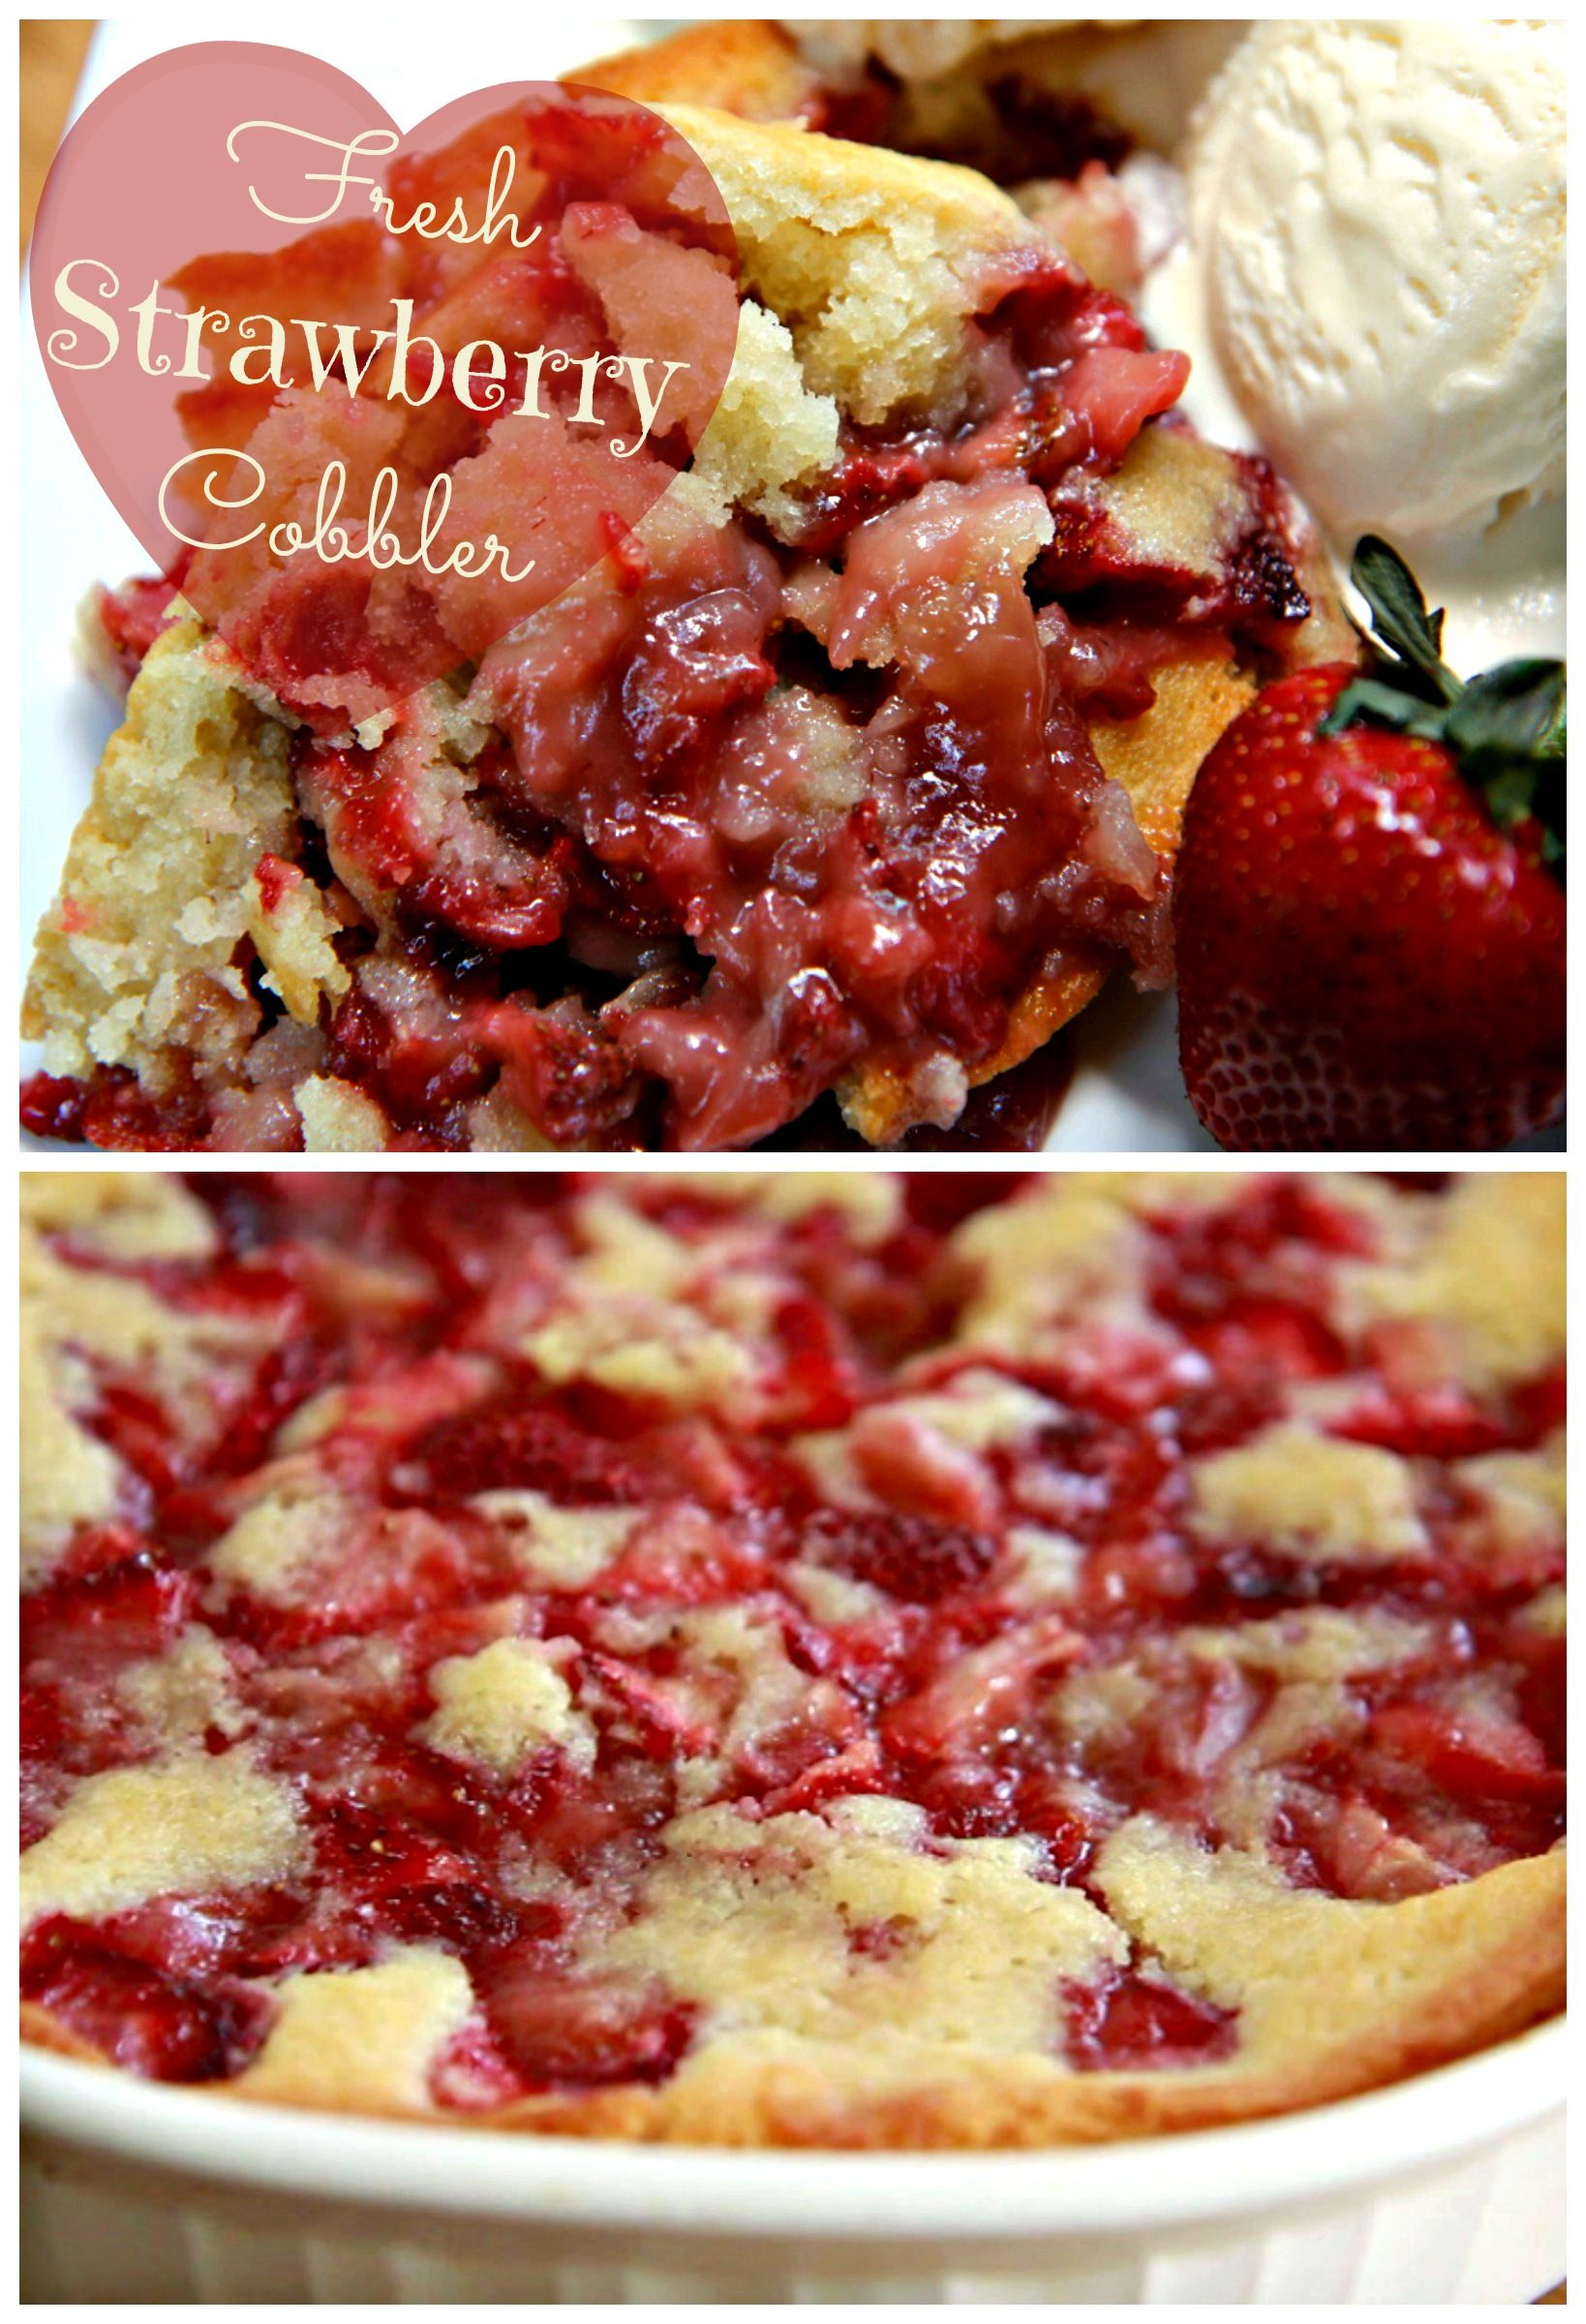 Strawberry Recipes Strawberry Recipes Whether you're looking for cakes, smoothies, or ice cream, we have just the perfect recipes for fresh strawberry season. Try this easy, gourmet recipe for sweet red strawberries stuffed with a cream cheese filling. Rhubarb and Strawberry Pie